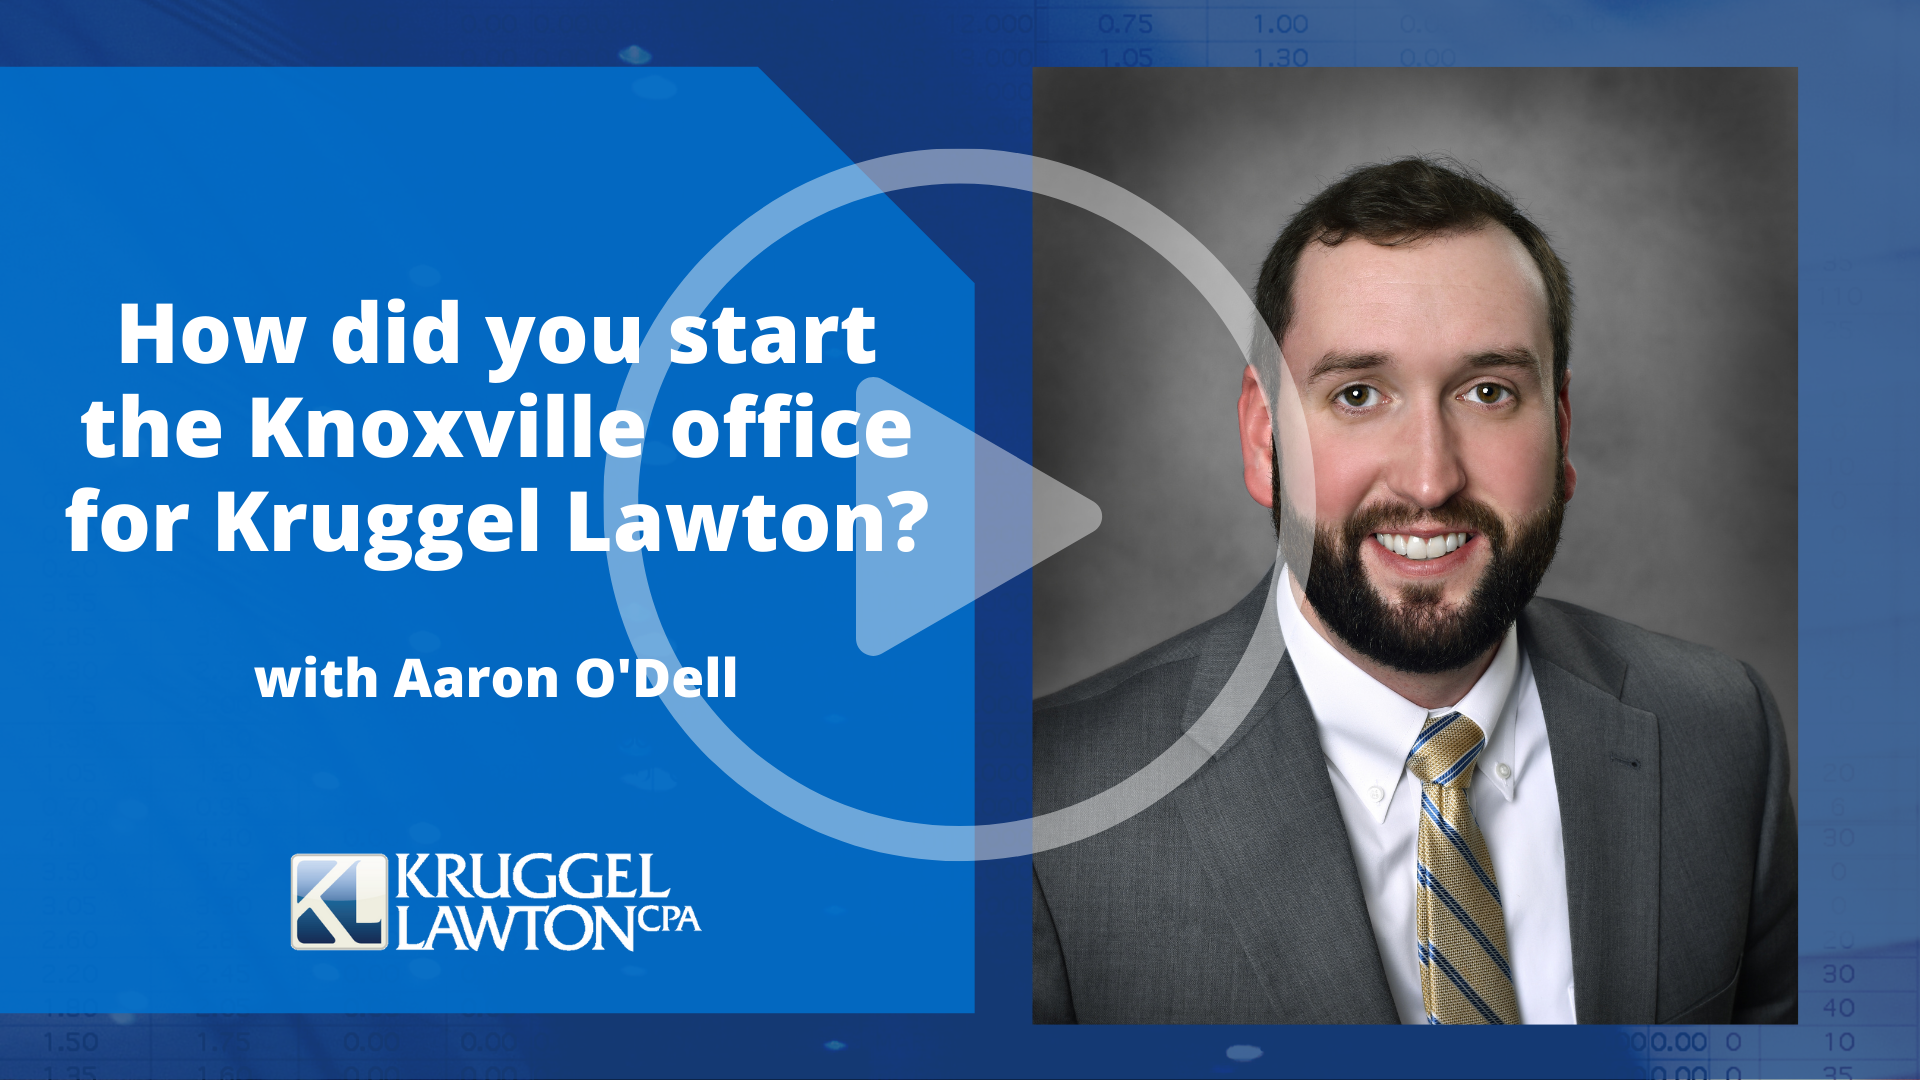 Get to know Aaron O'Dell in our Knoxville office